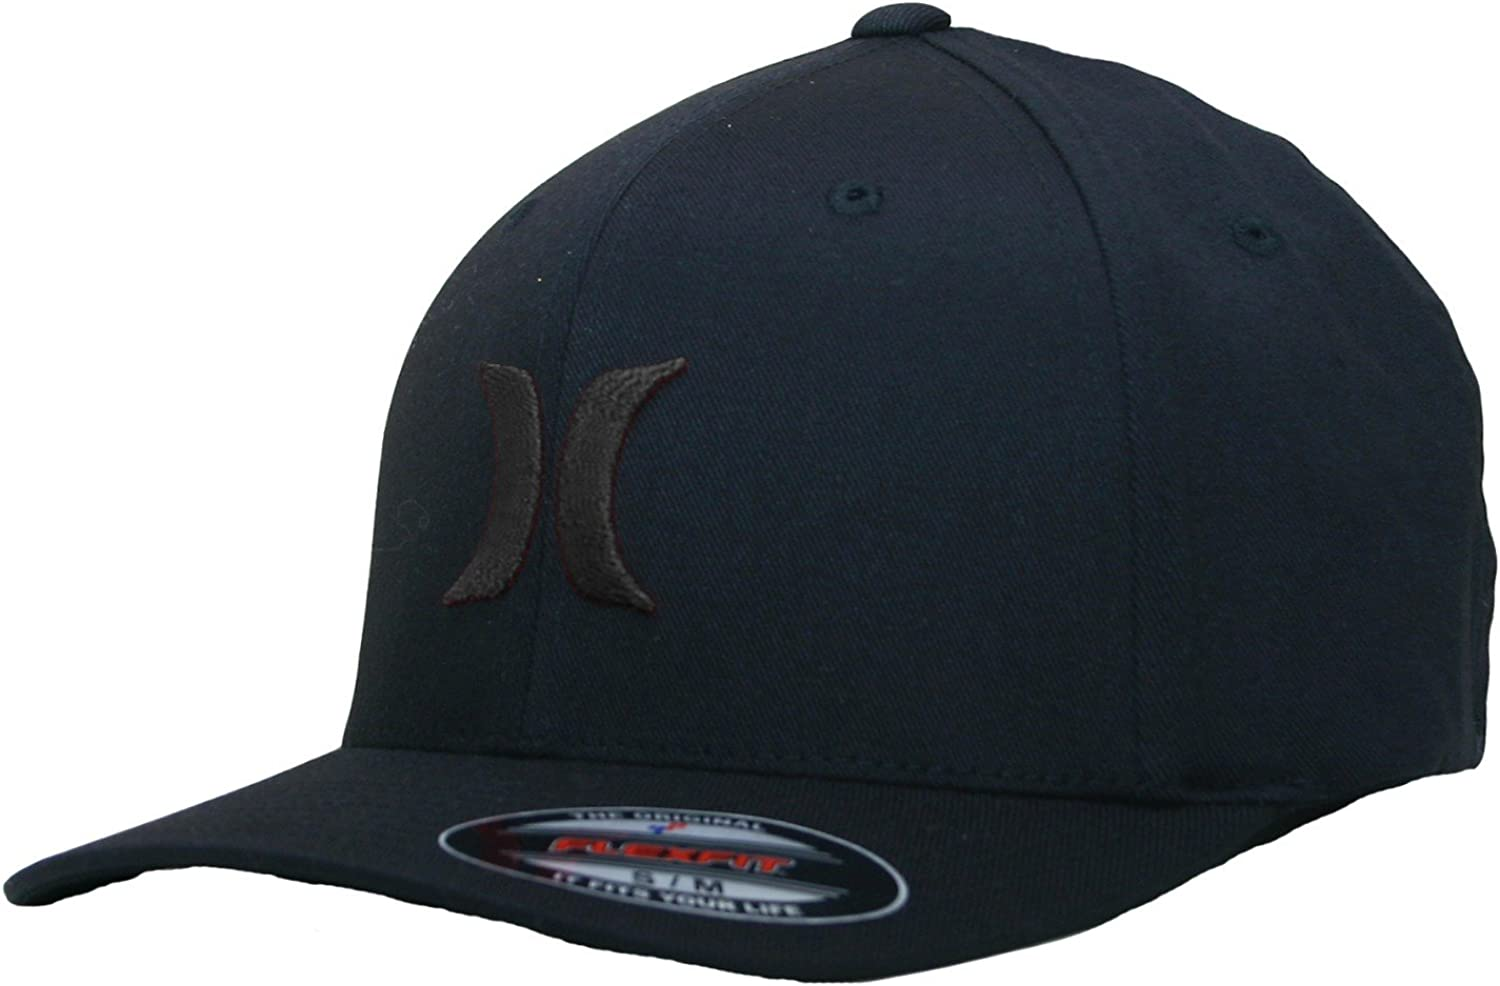 Hurley Flexfit curva CAP ~ One & Only b / b: Amazon.es: Ropa y ...